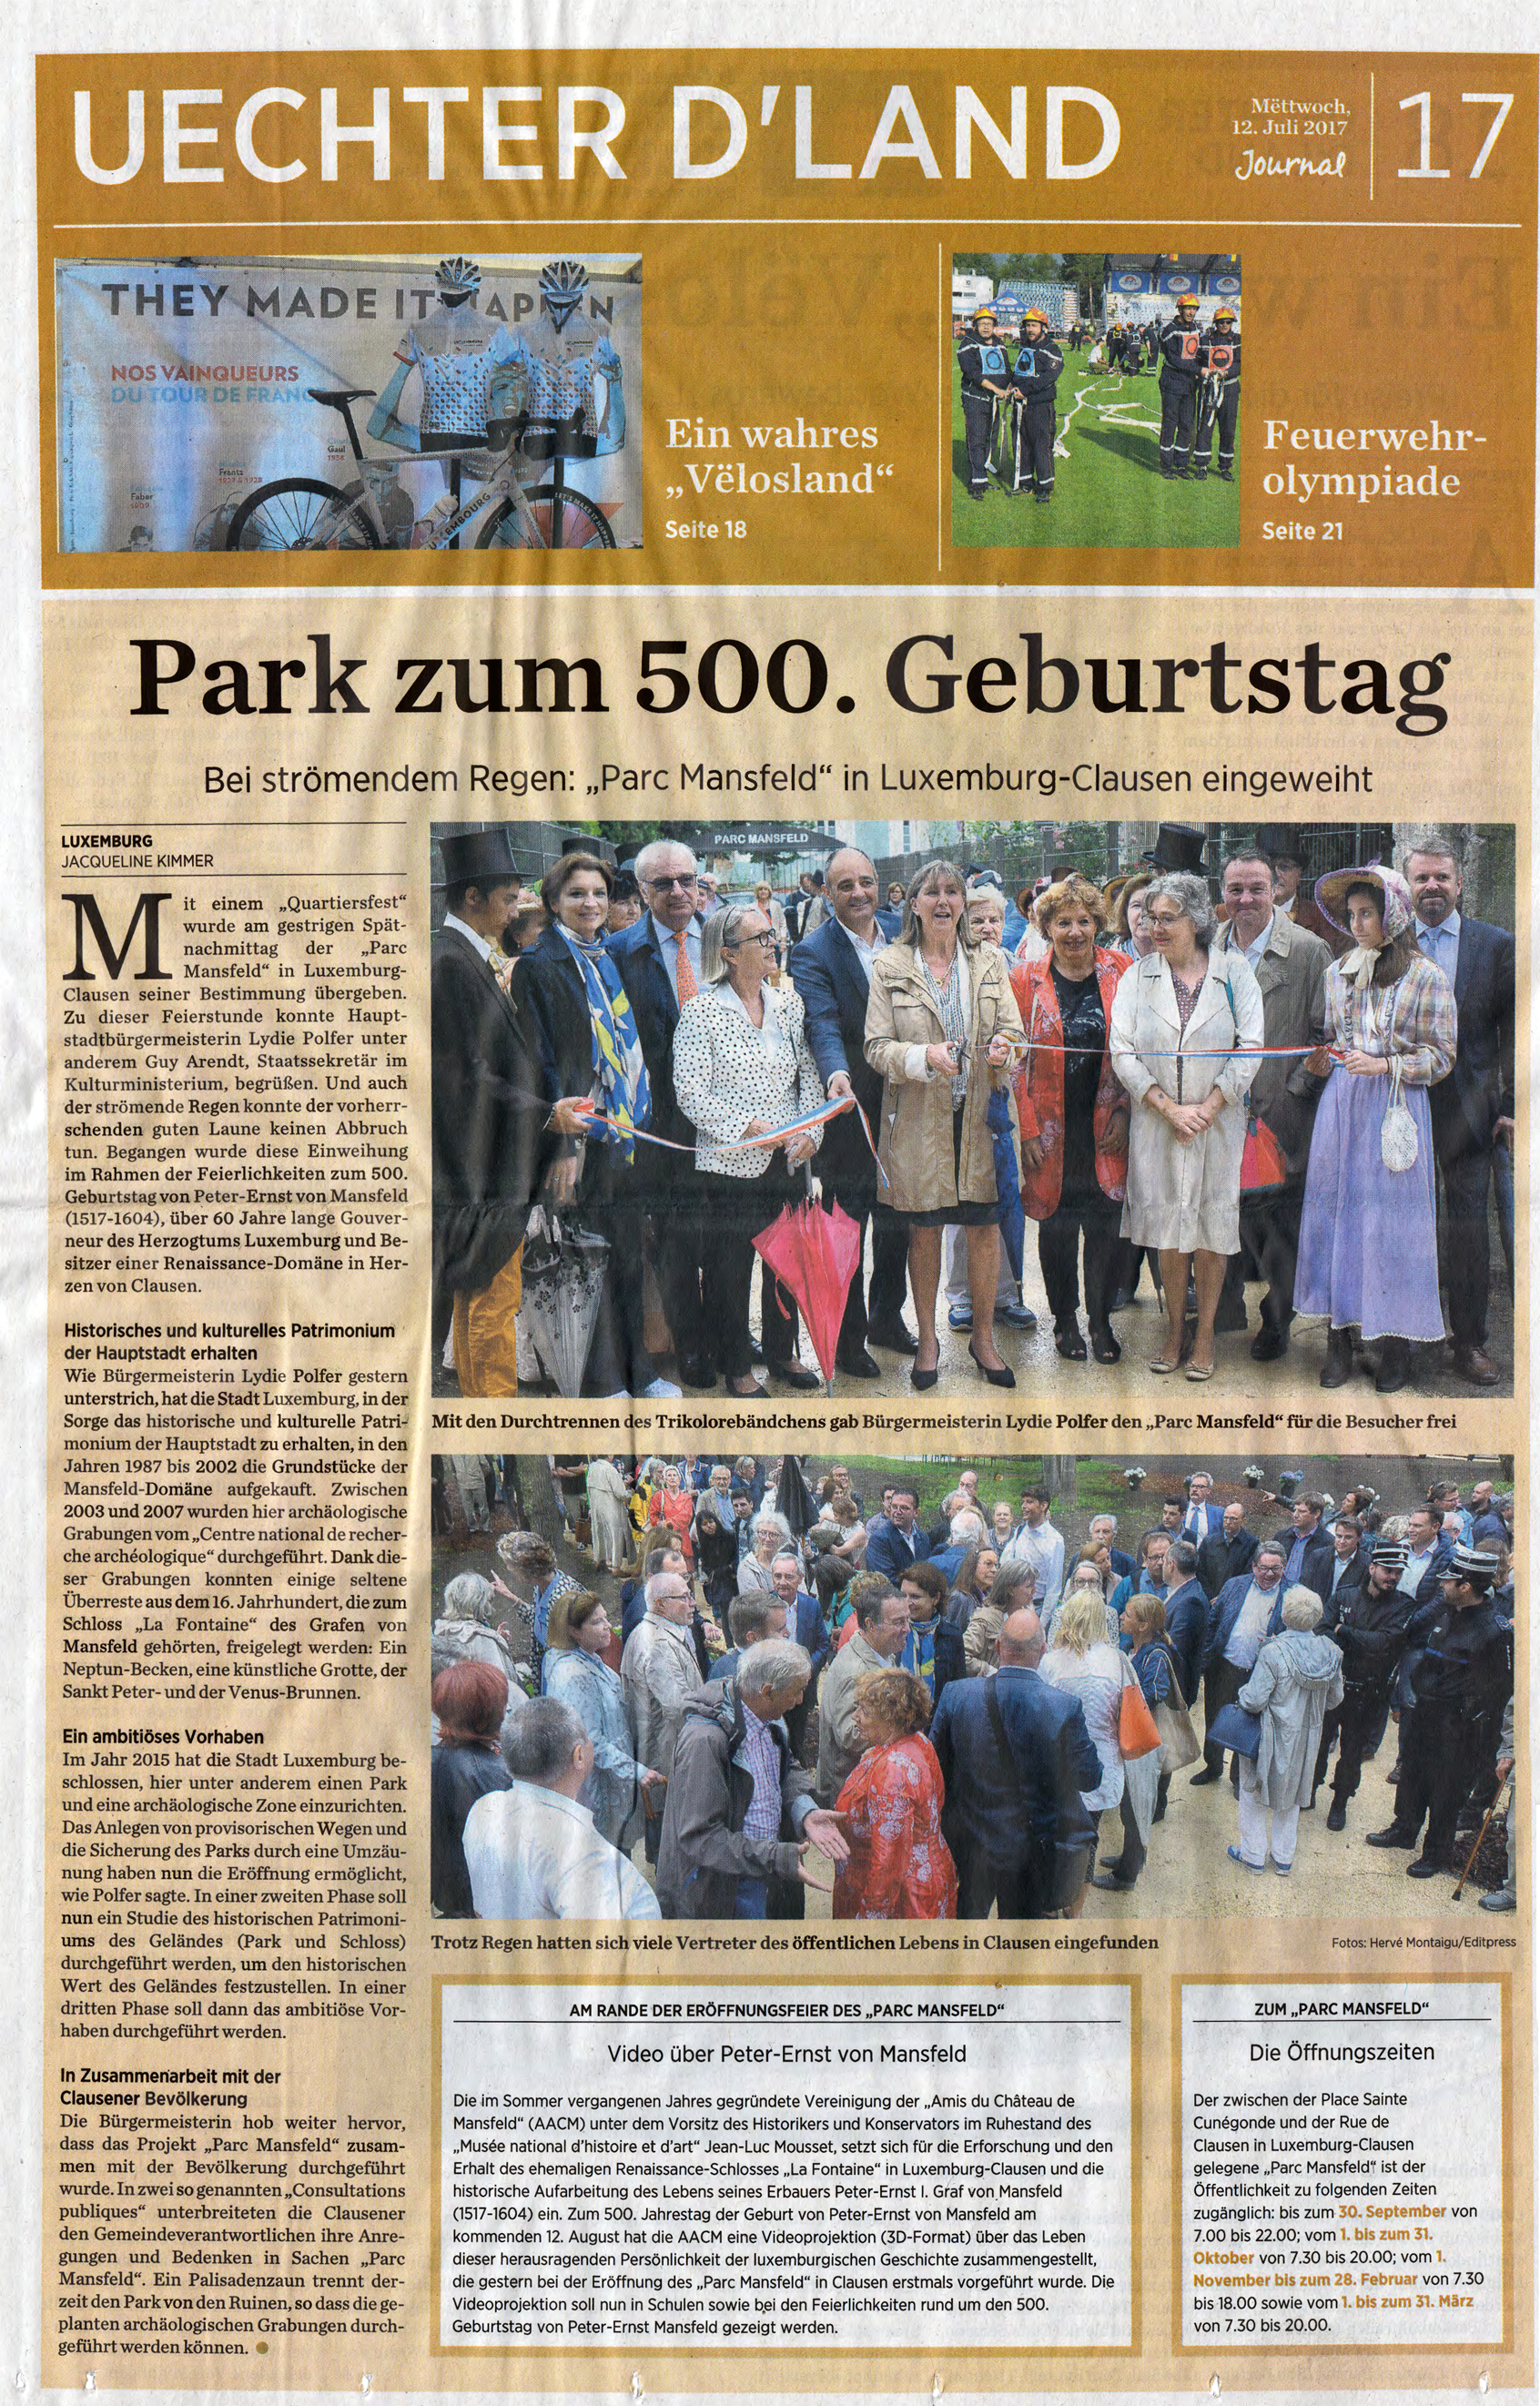 2017.07.12 Aweiung Mansfeldpark Journal